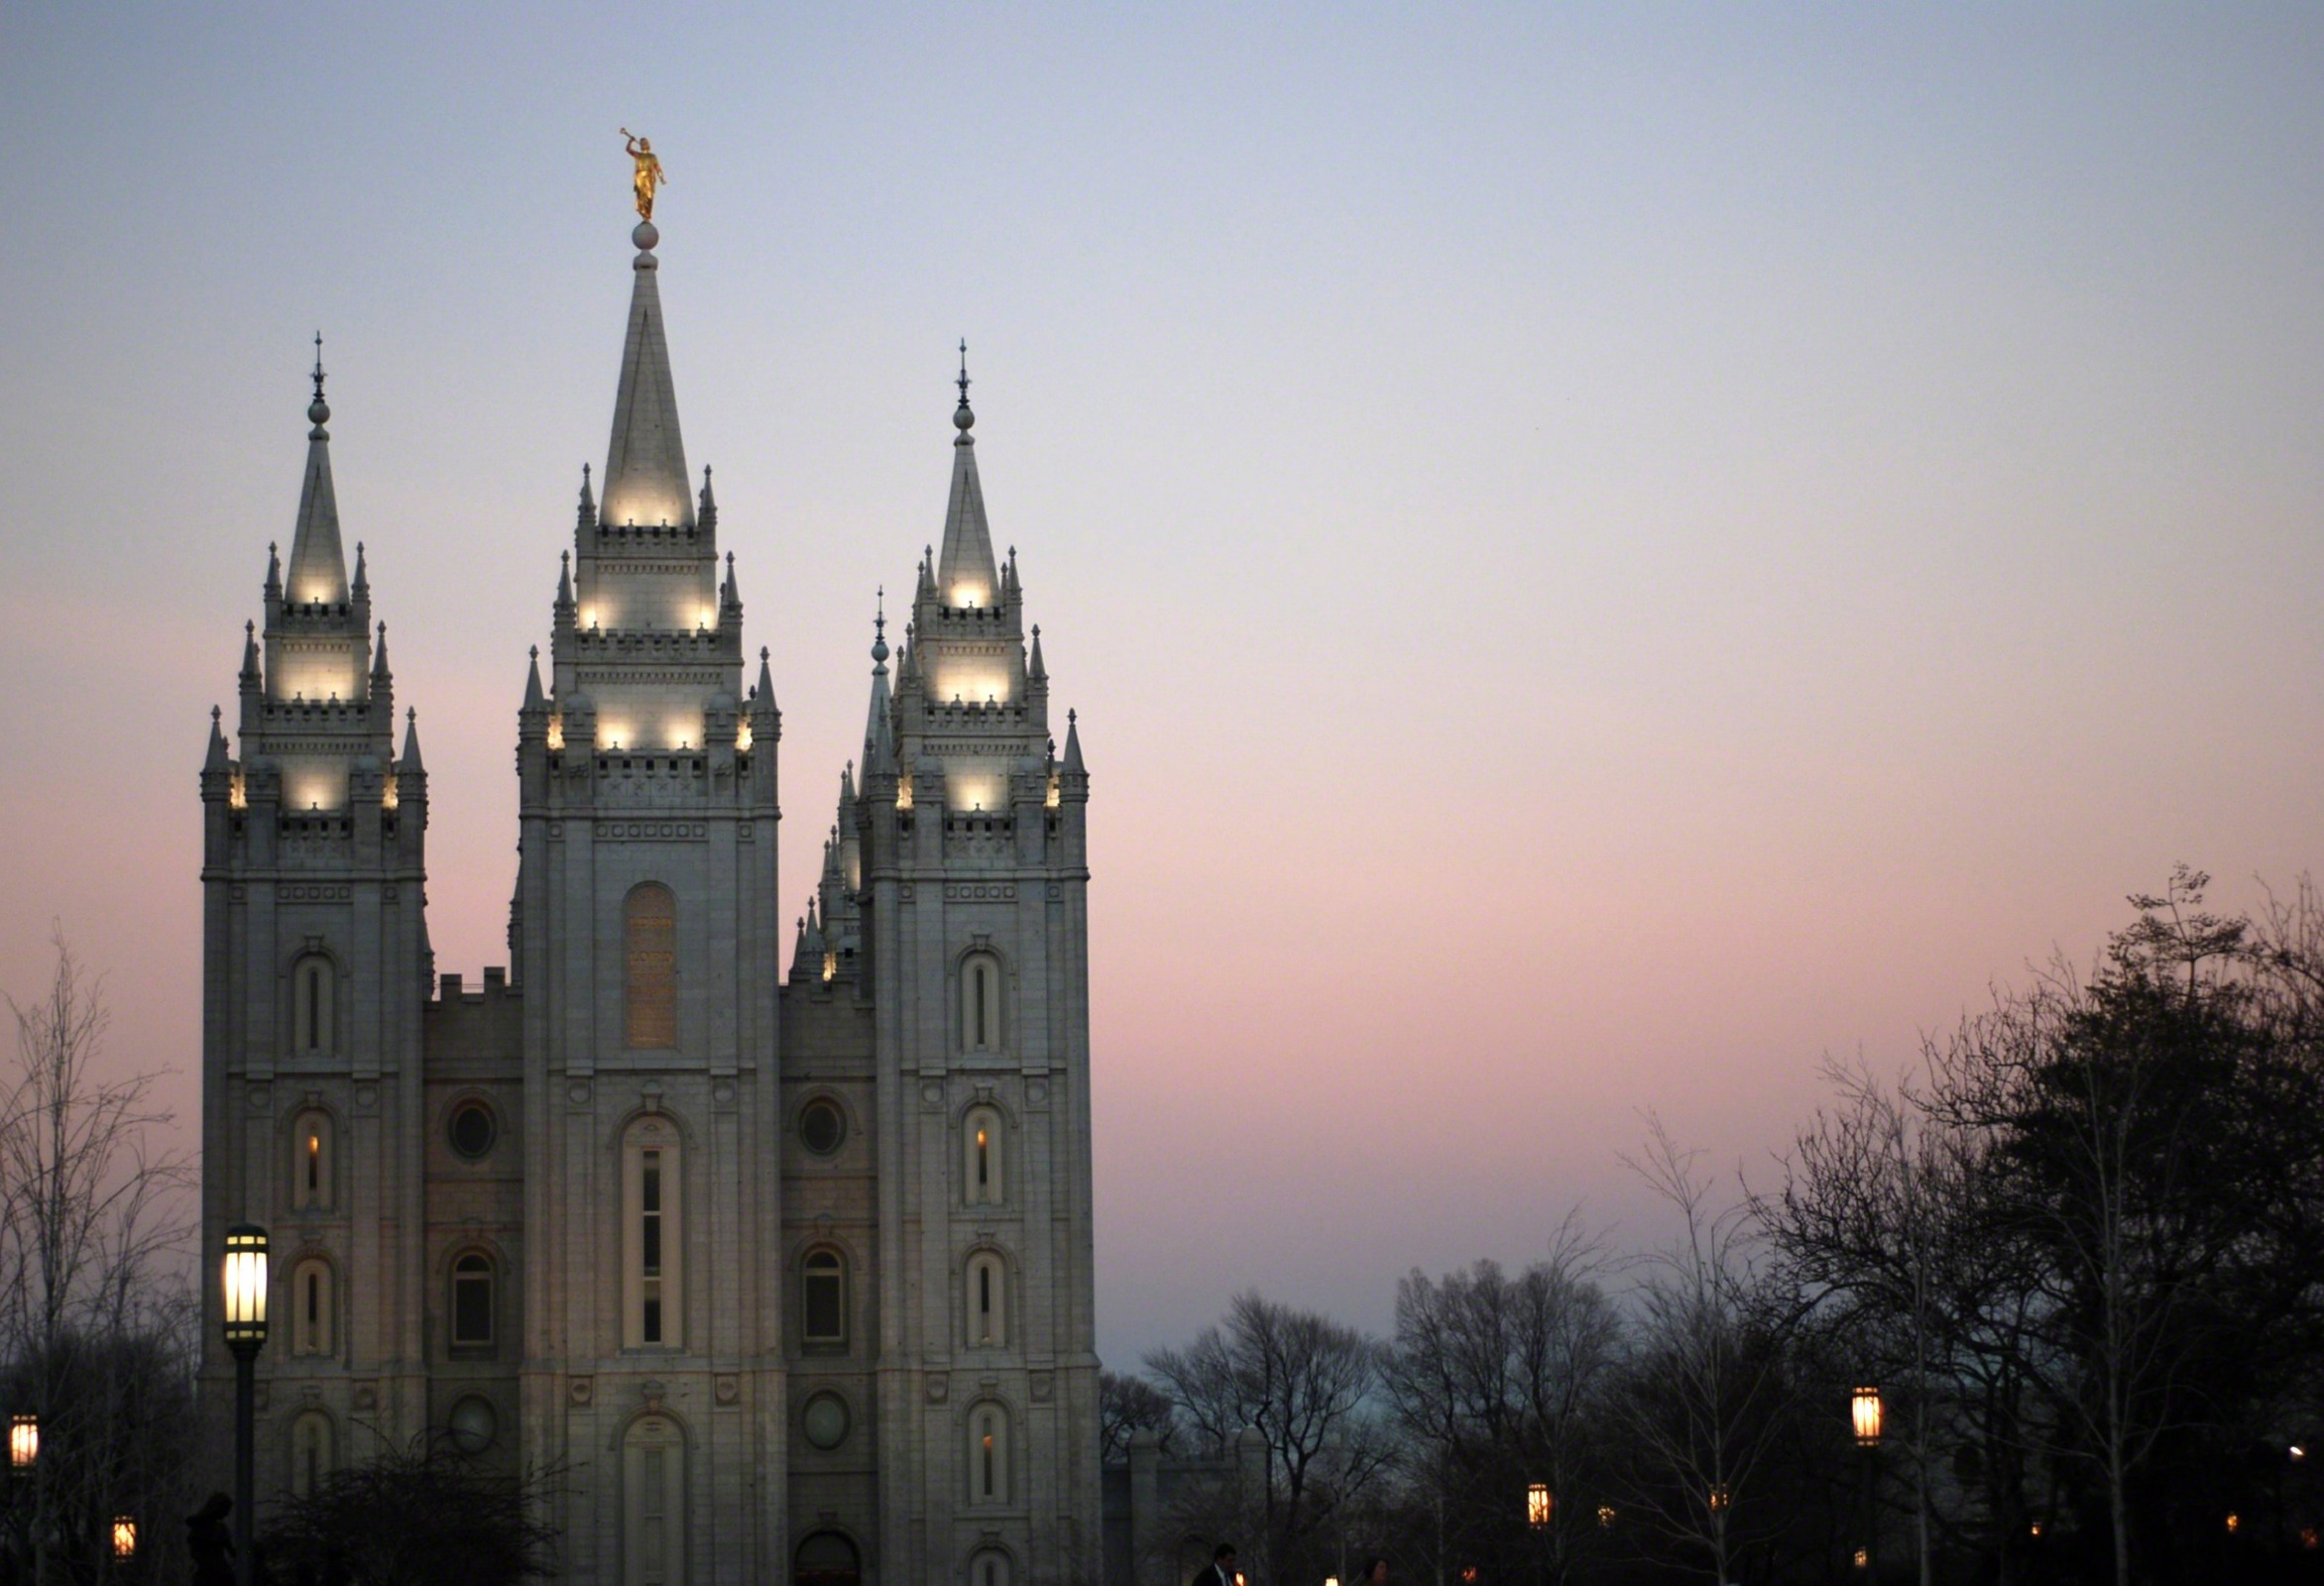 Jesus Christ Wallpapers And Quotes Salt Lake Temple In The Evening